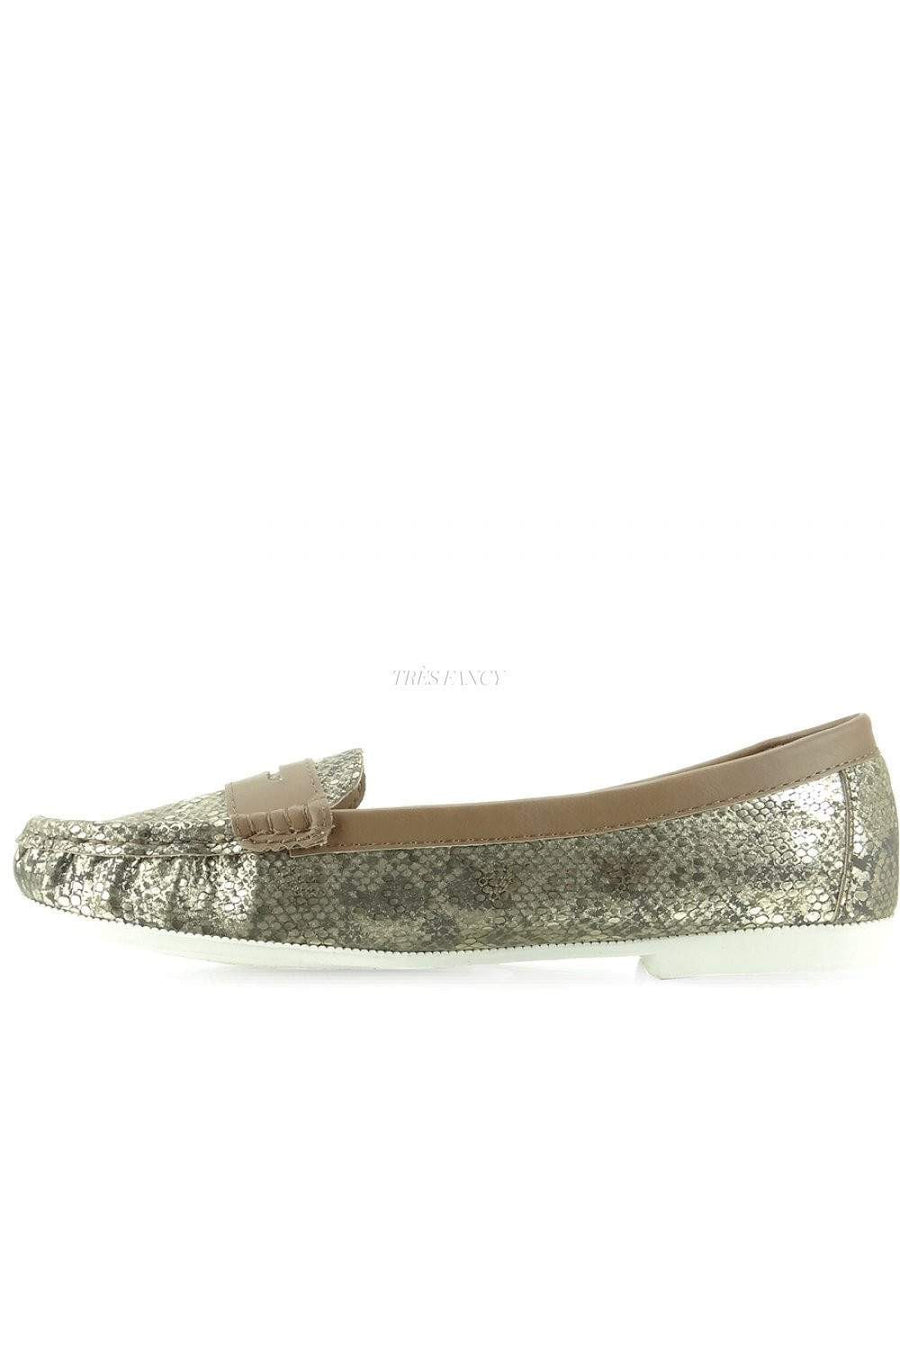 Ballet flats 38050 Heppin-Ballet Flats, Ballet Pumps for Women-Heppin-Très Fancy